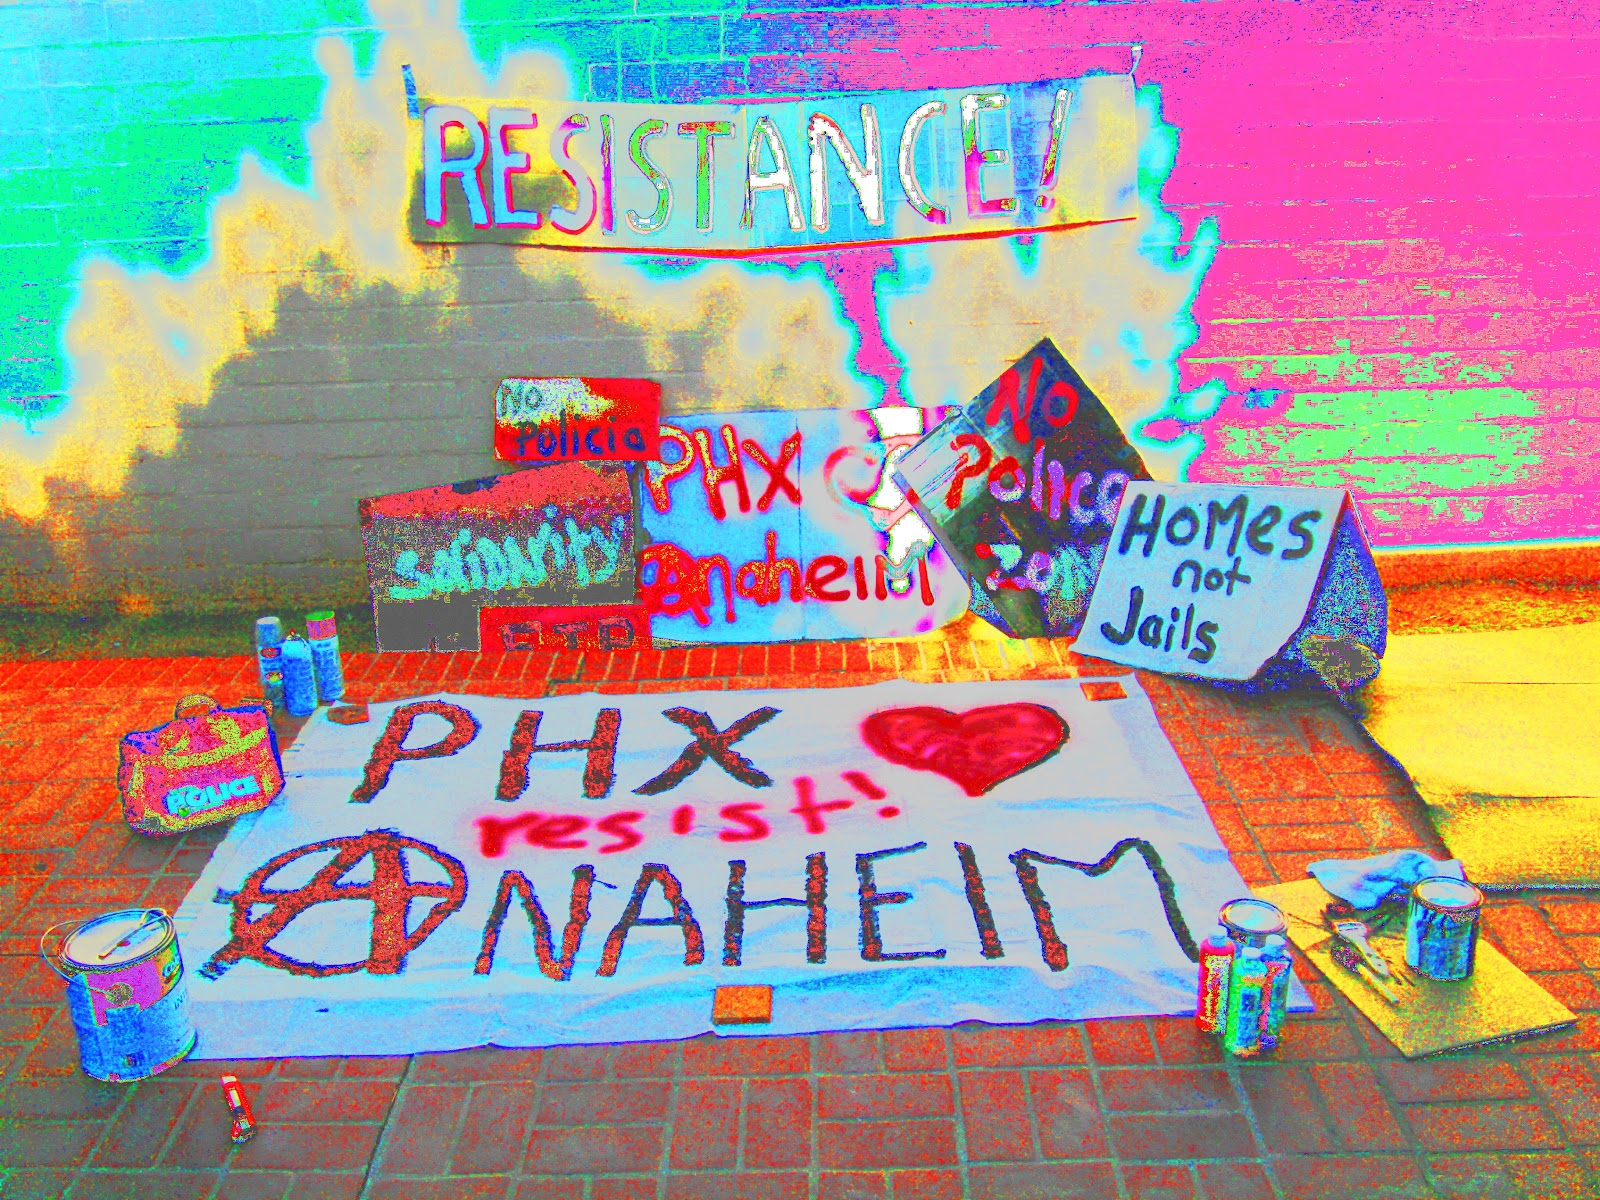 the retired diary of a prison abolitionist  phoenix hearts anaheim resist the police state